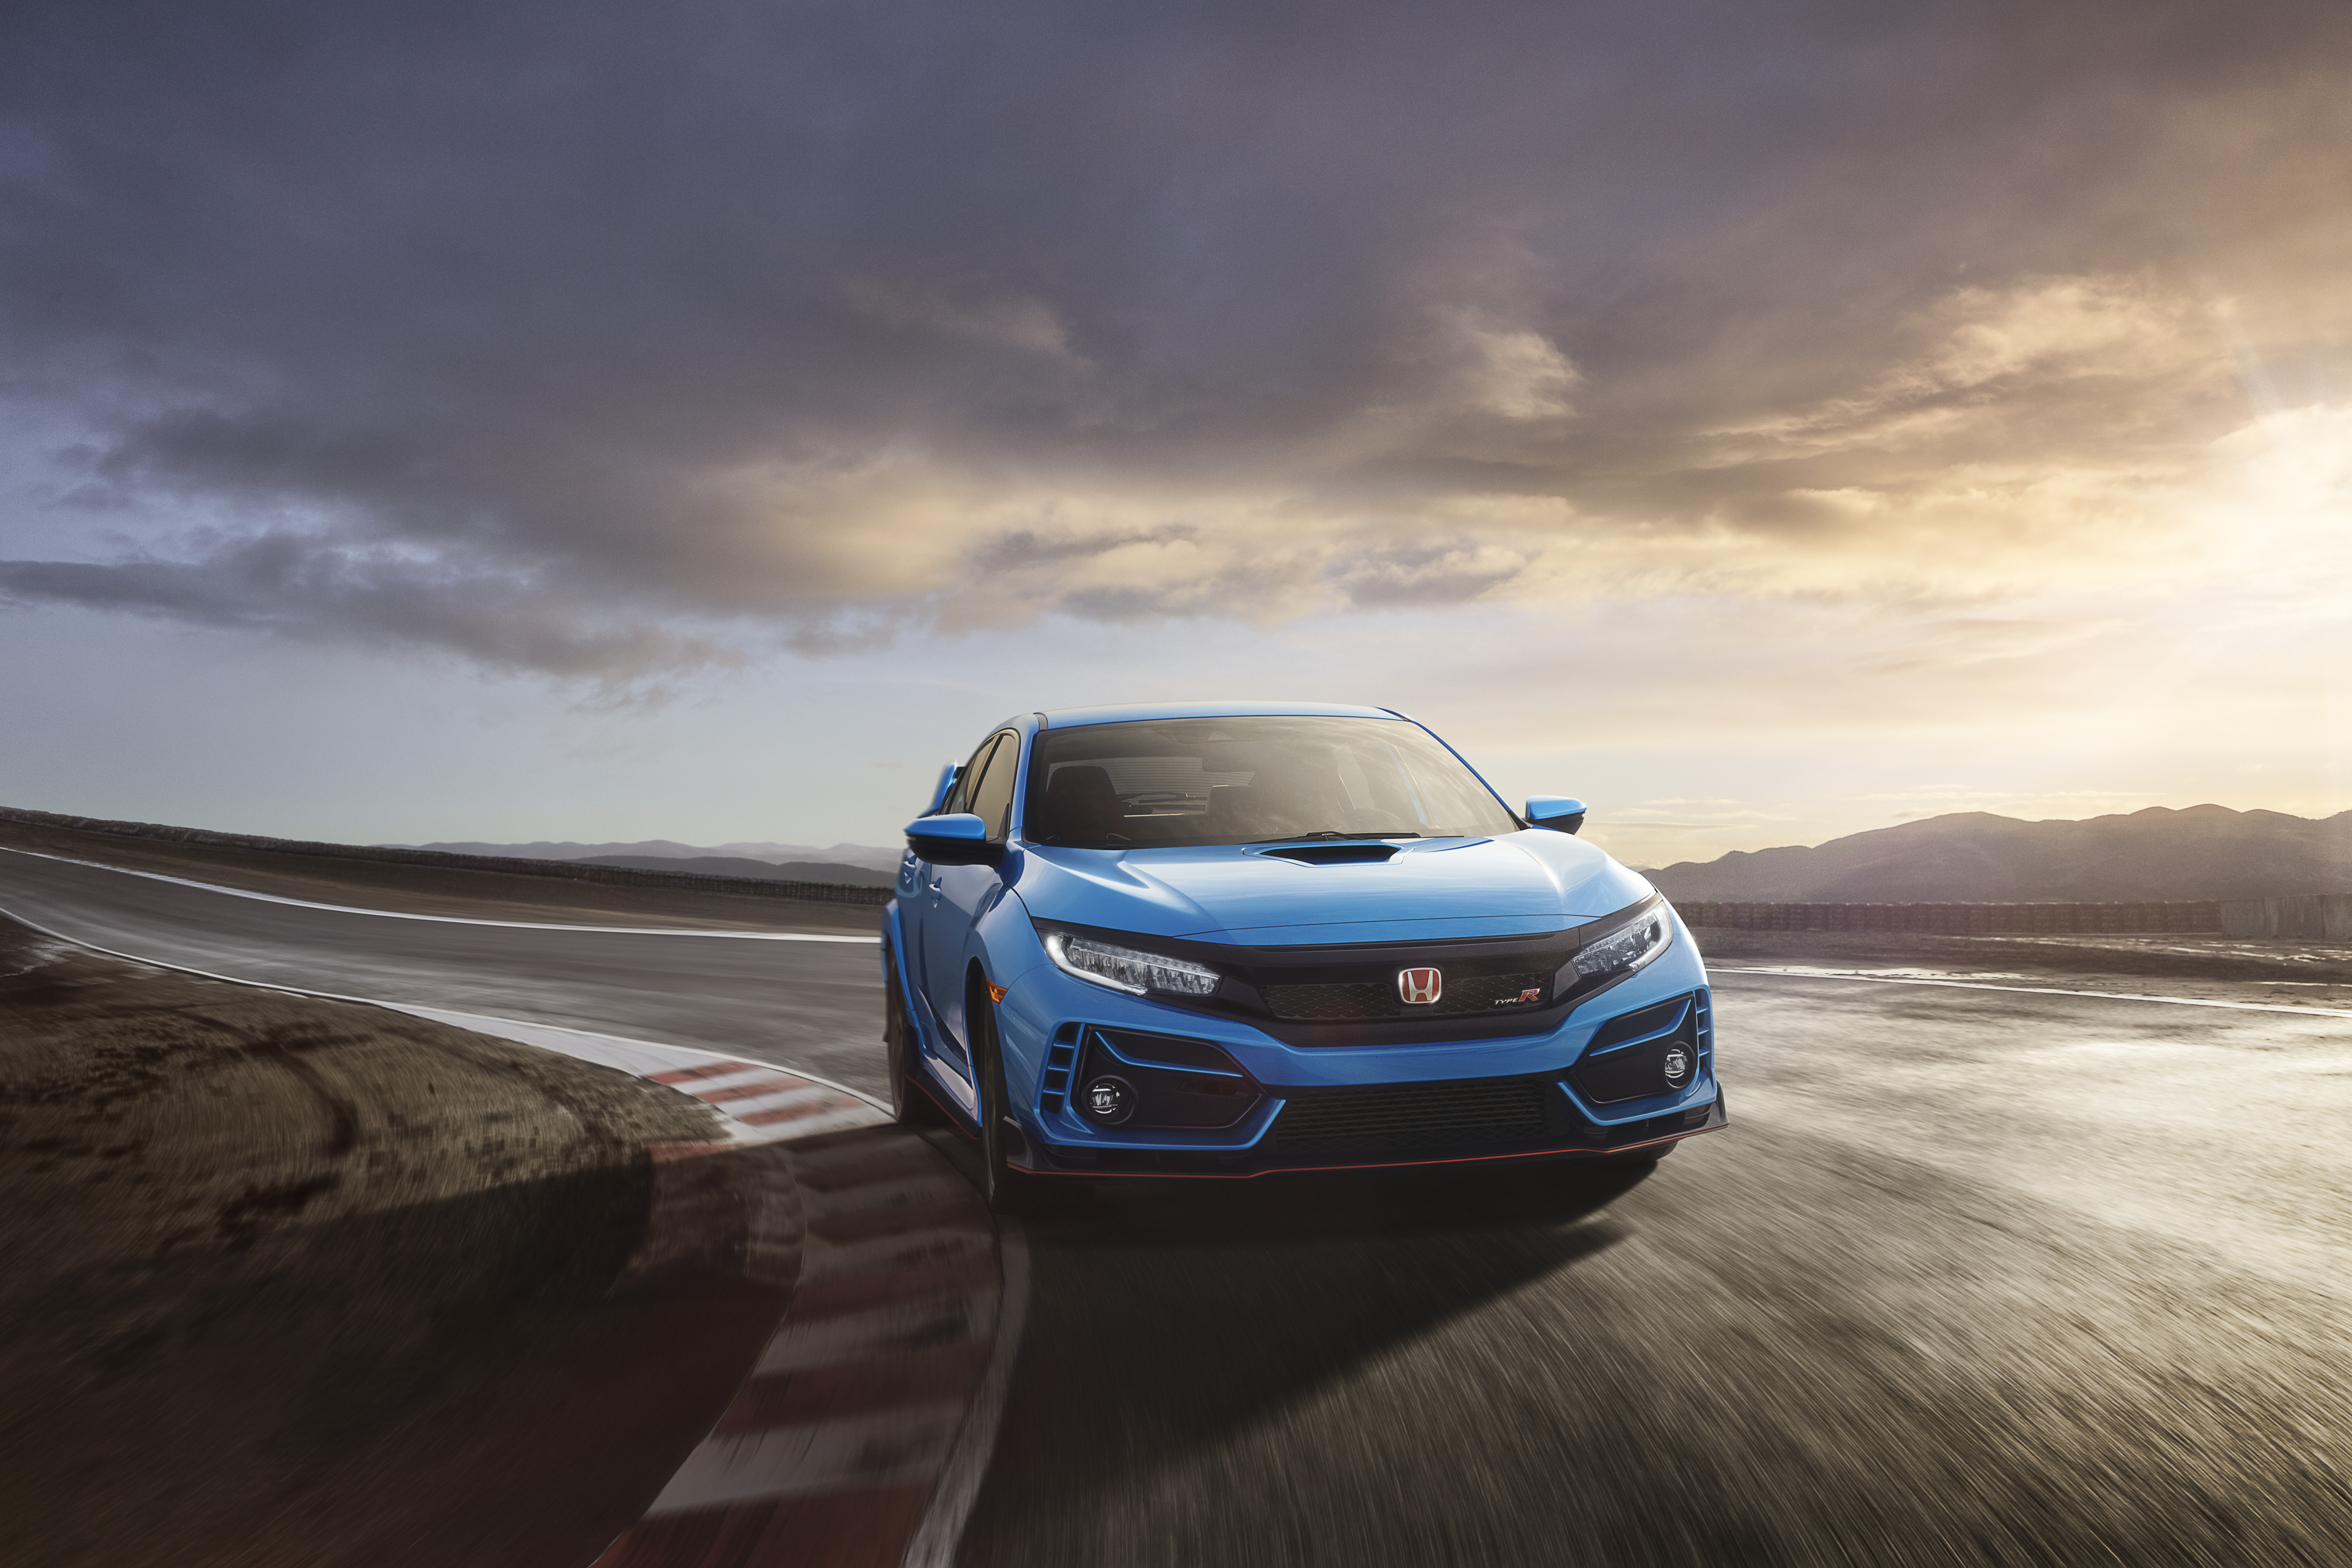 2020 Honda Civic Type R Arriving Soon With Upgraded Performance Honda Sensing And New Logr Datalogging Smartphone App